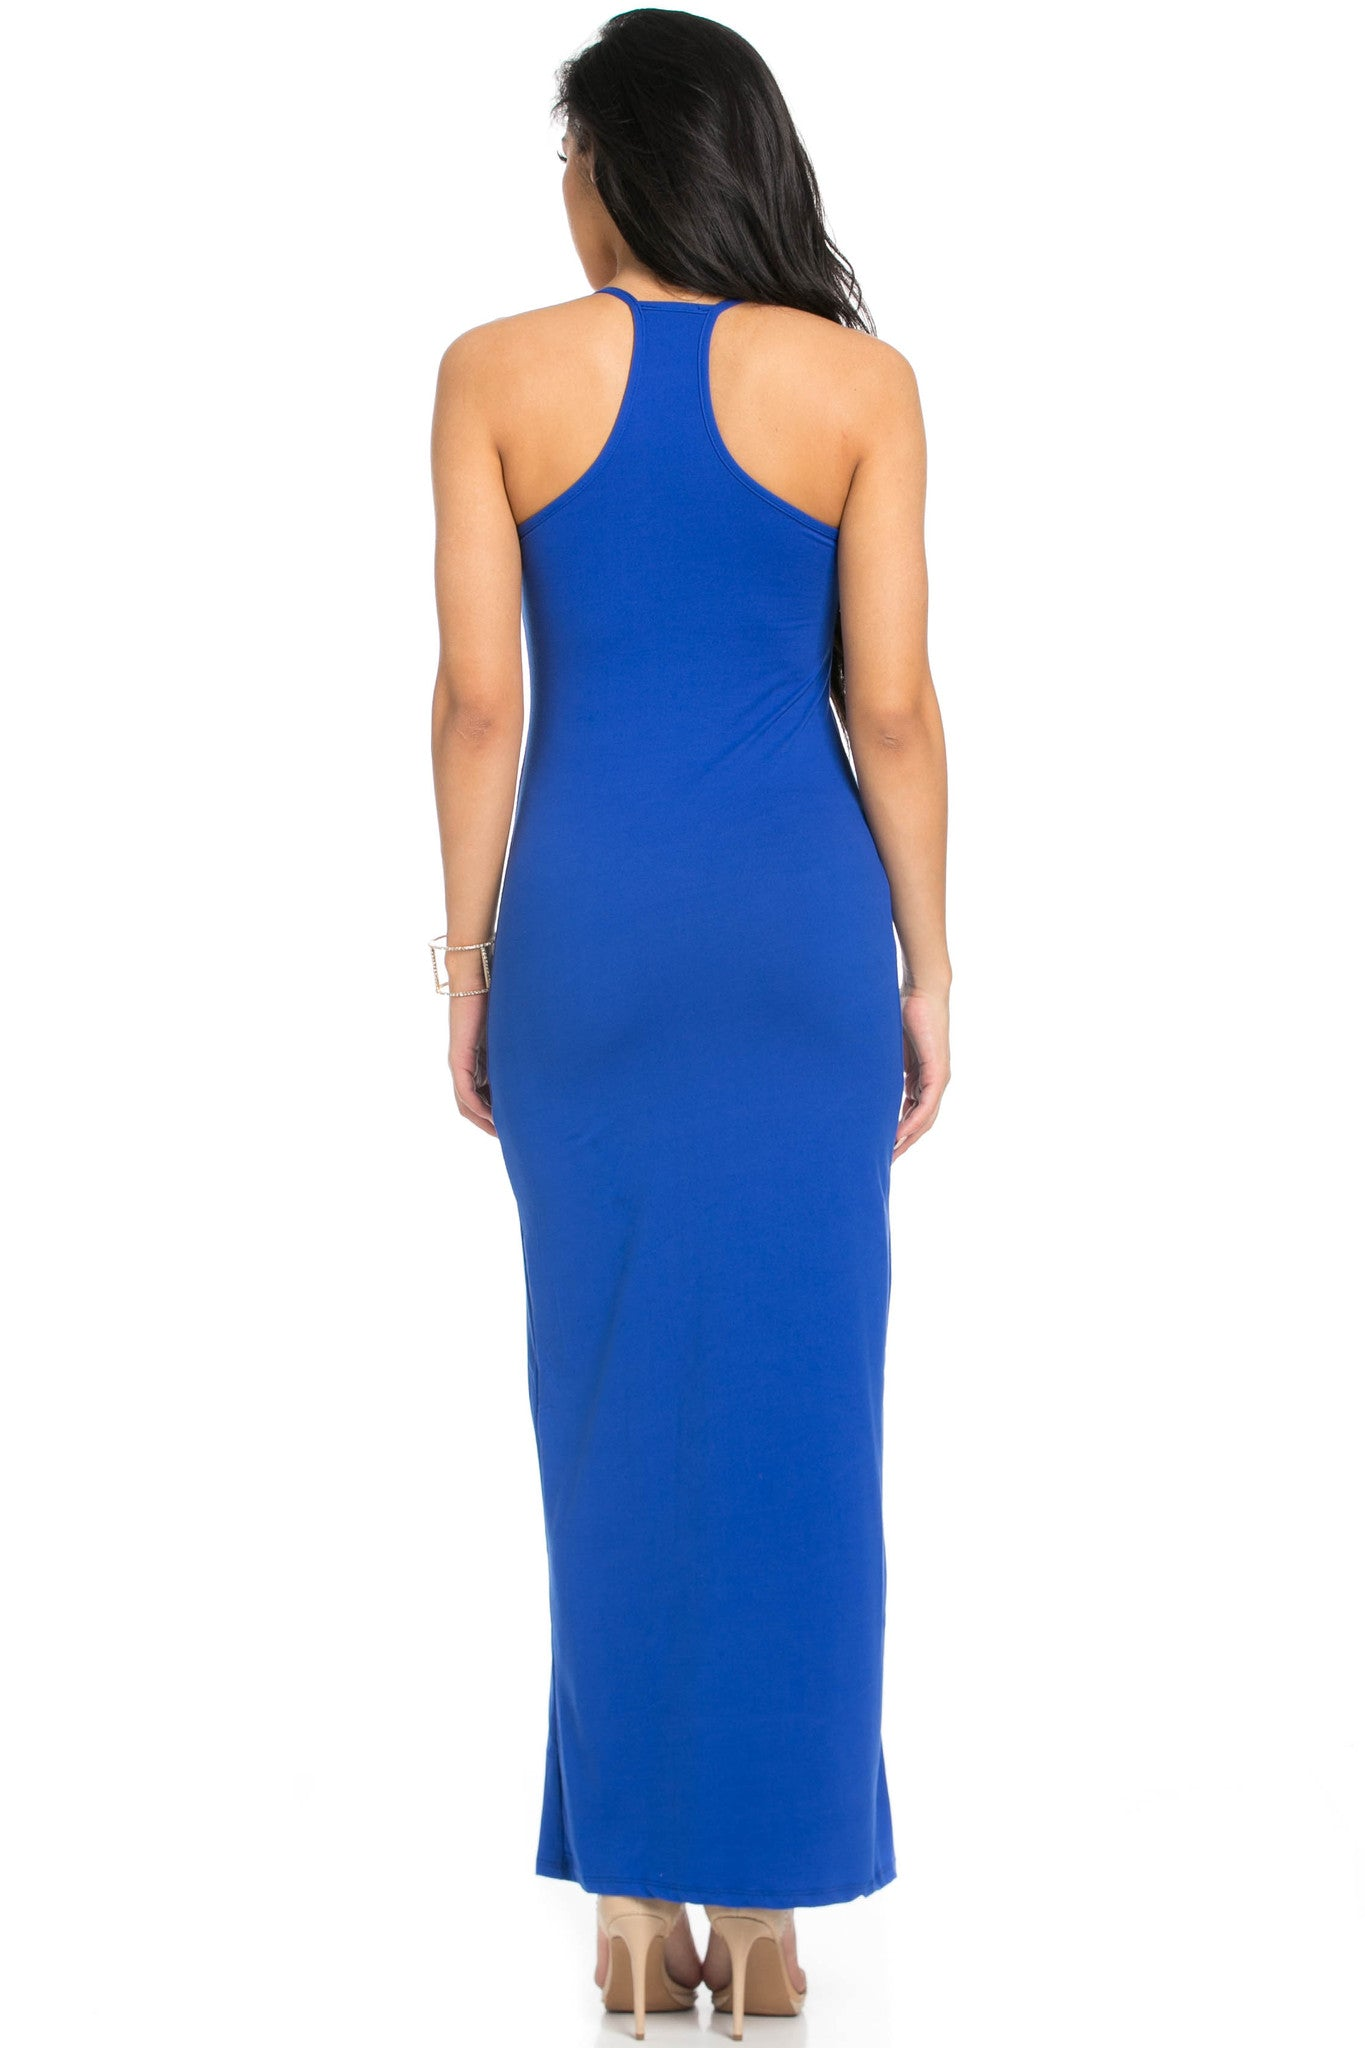 Micro Suede Royal Blue Maxi Dress - Dresses - My Yuccie - 3